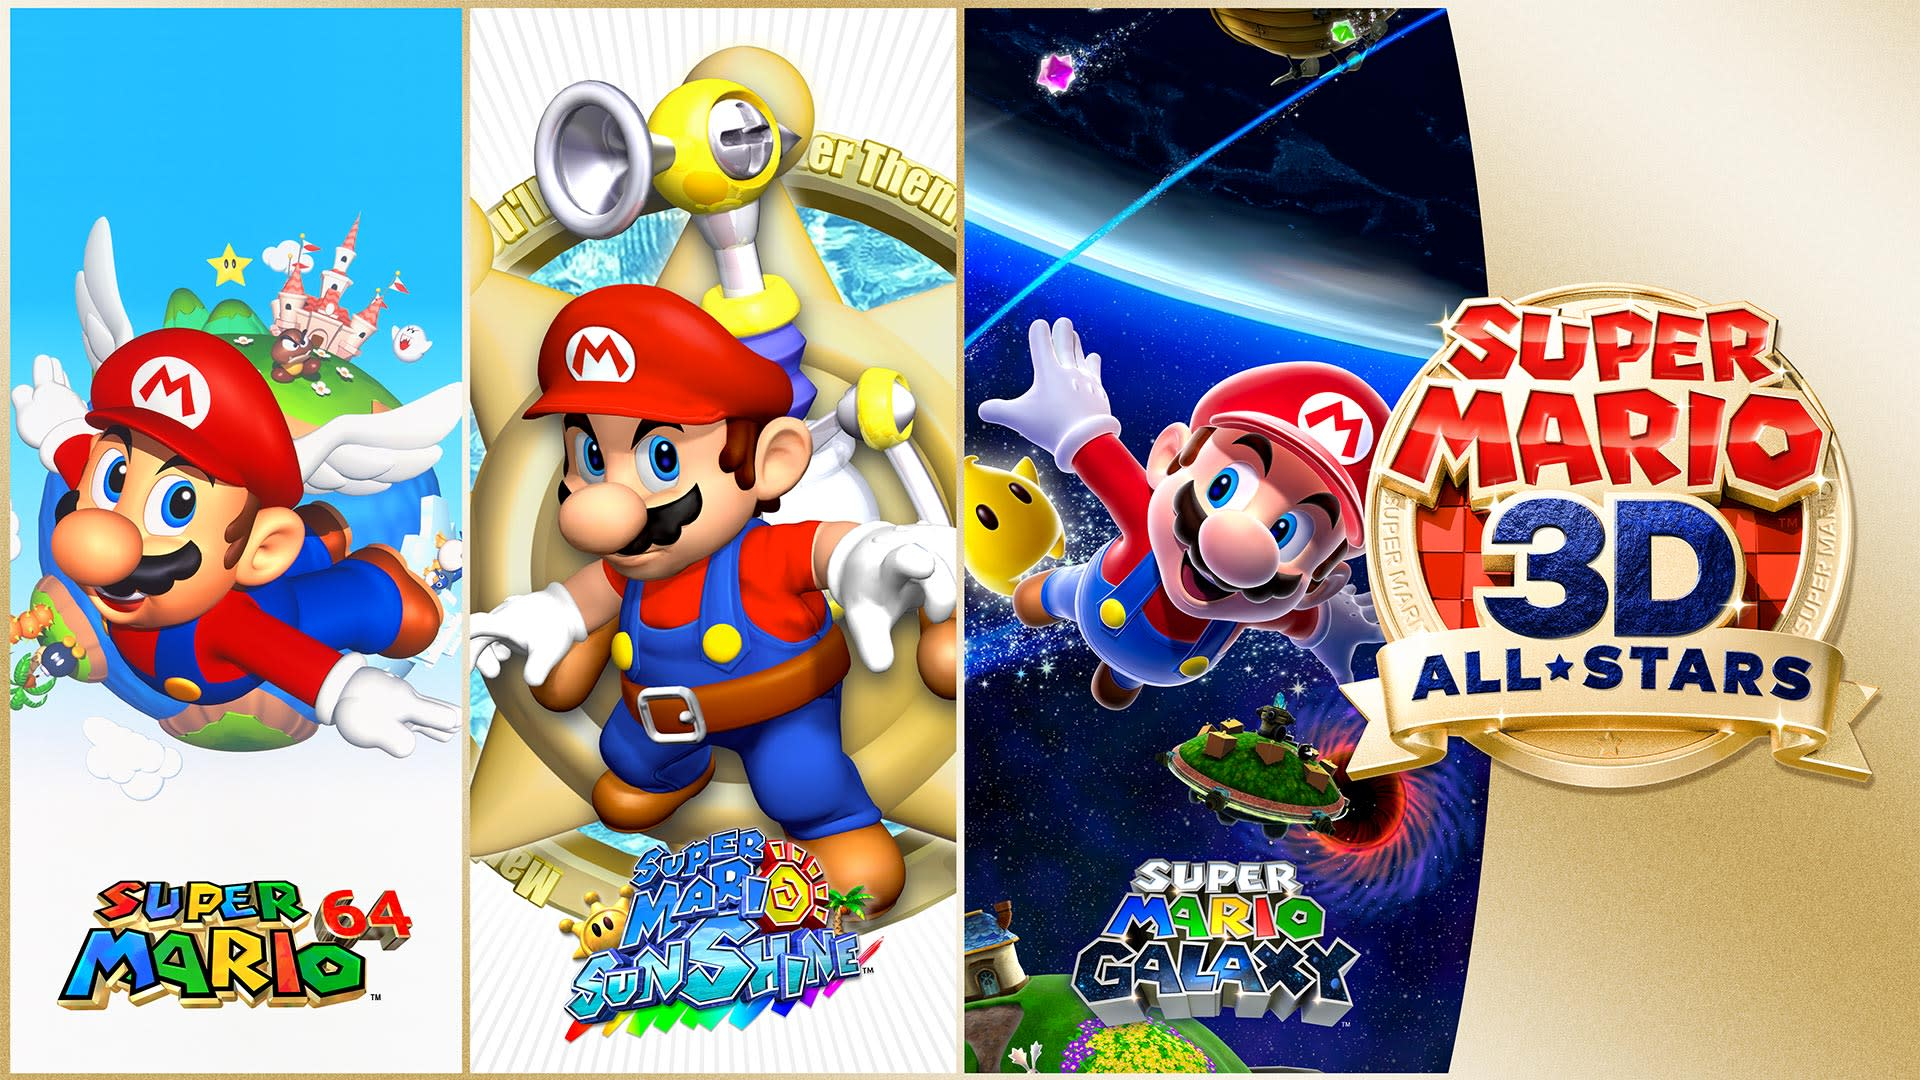 Super Mario 3D All Stars (Digital) is no longer available on the Nintendo eShop